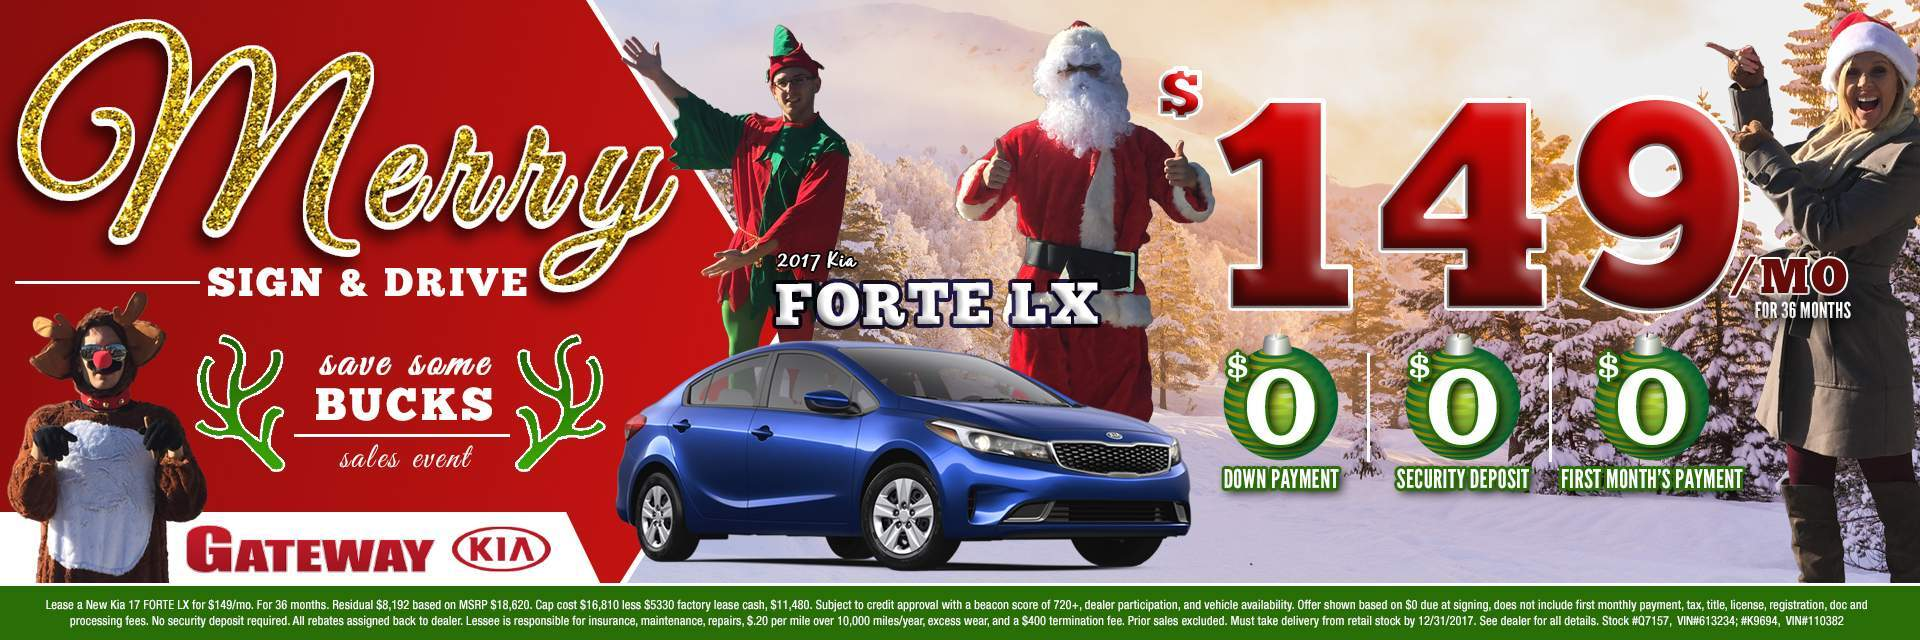 $149 Forte Merry Sign and Drive